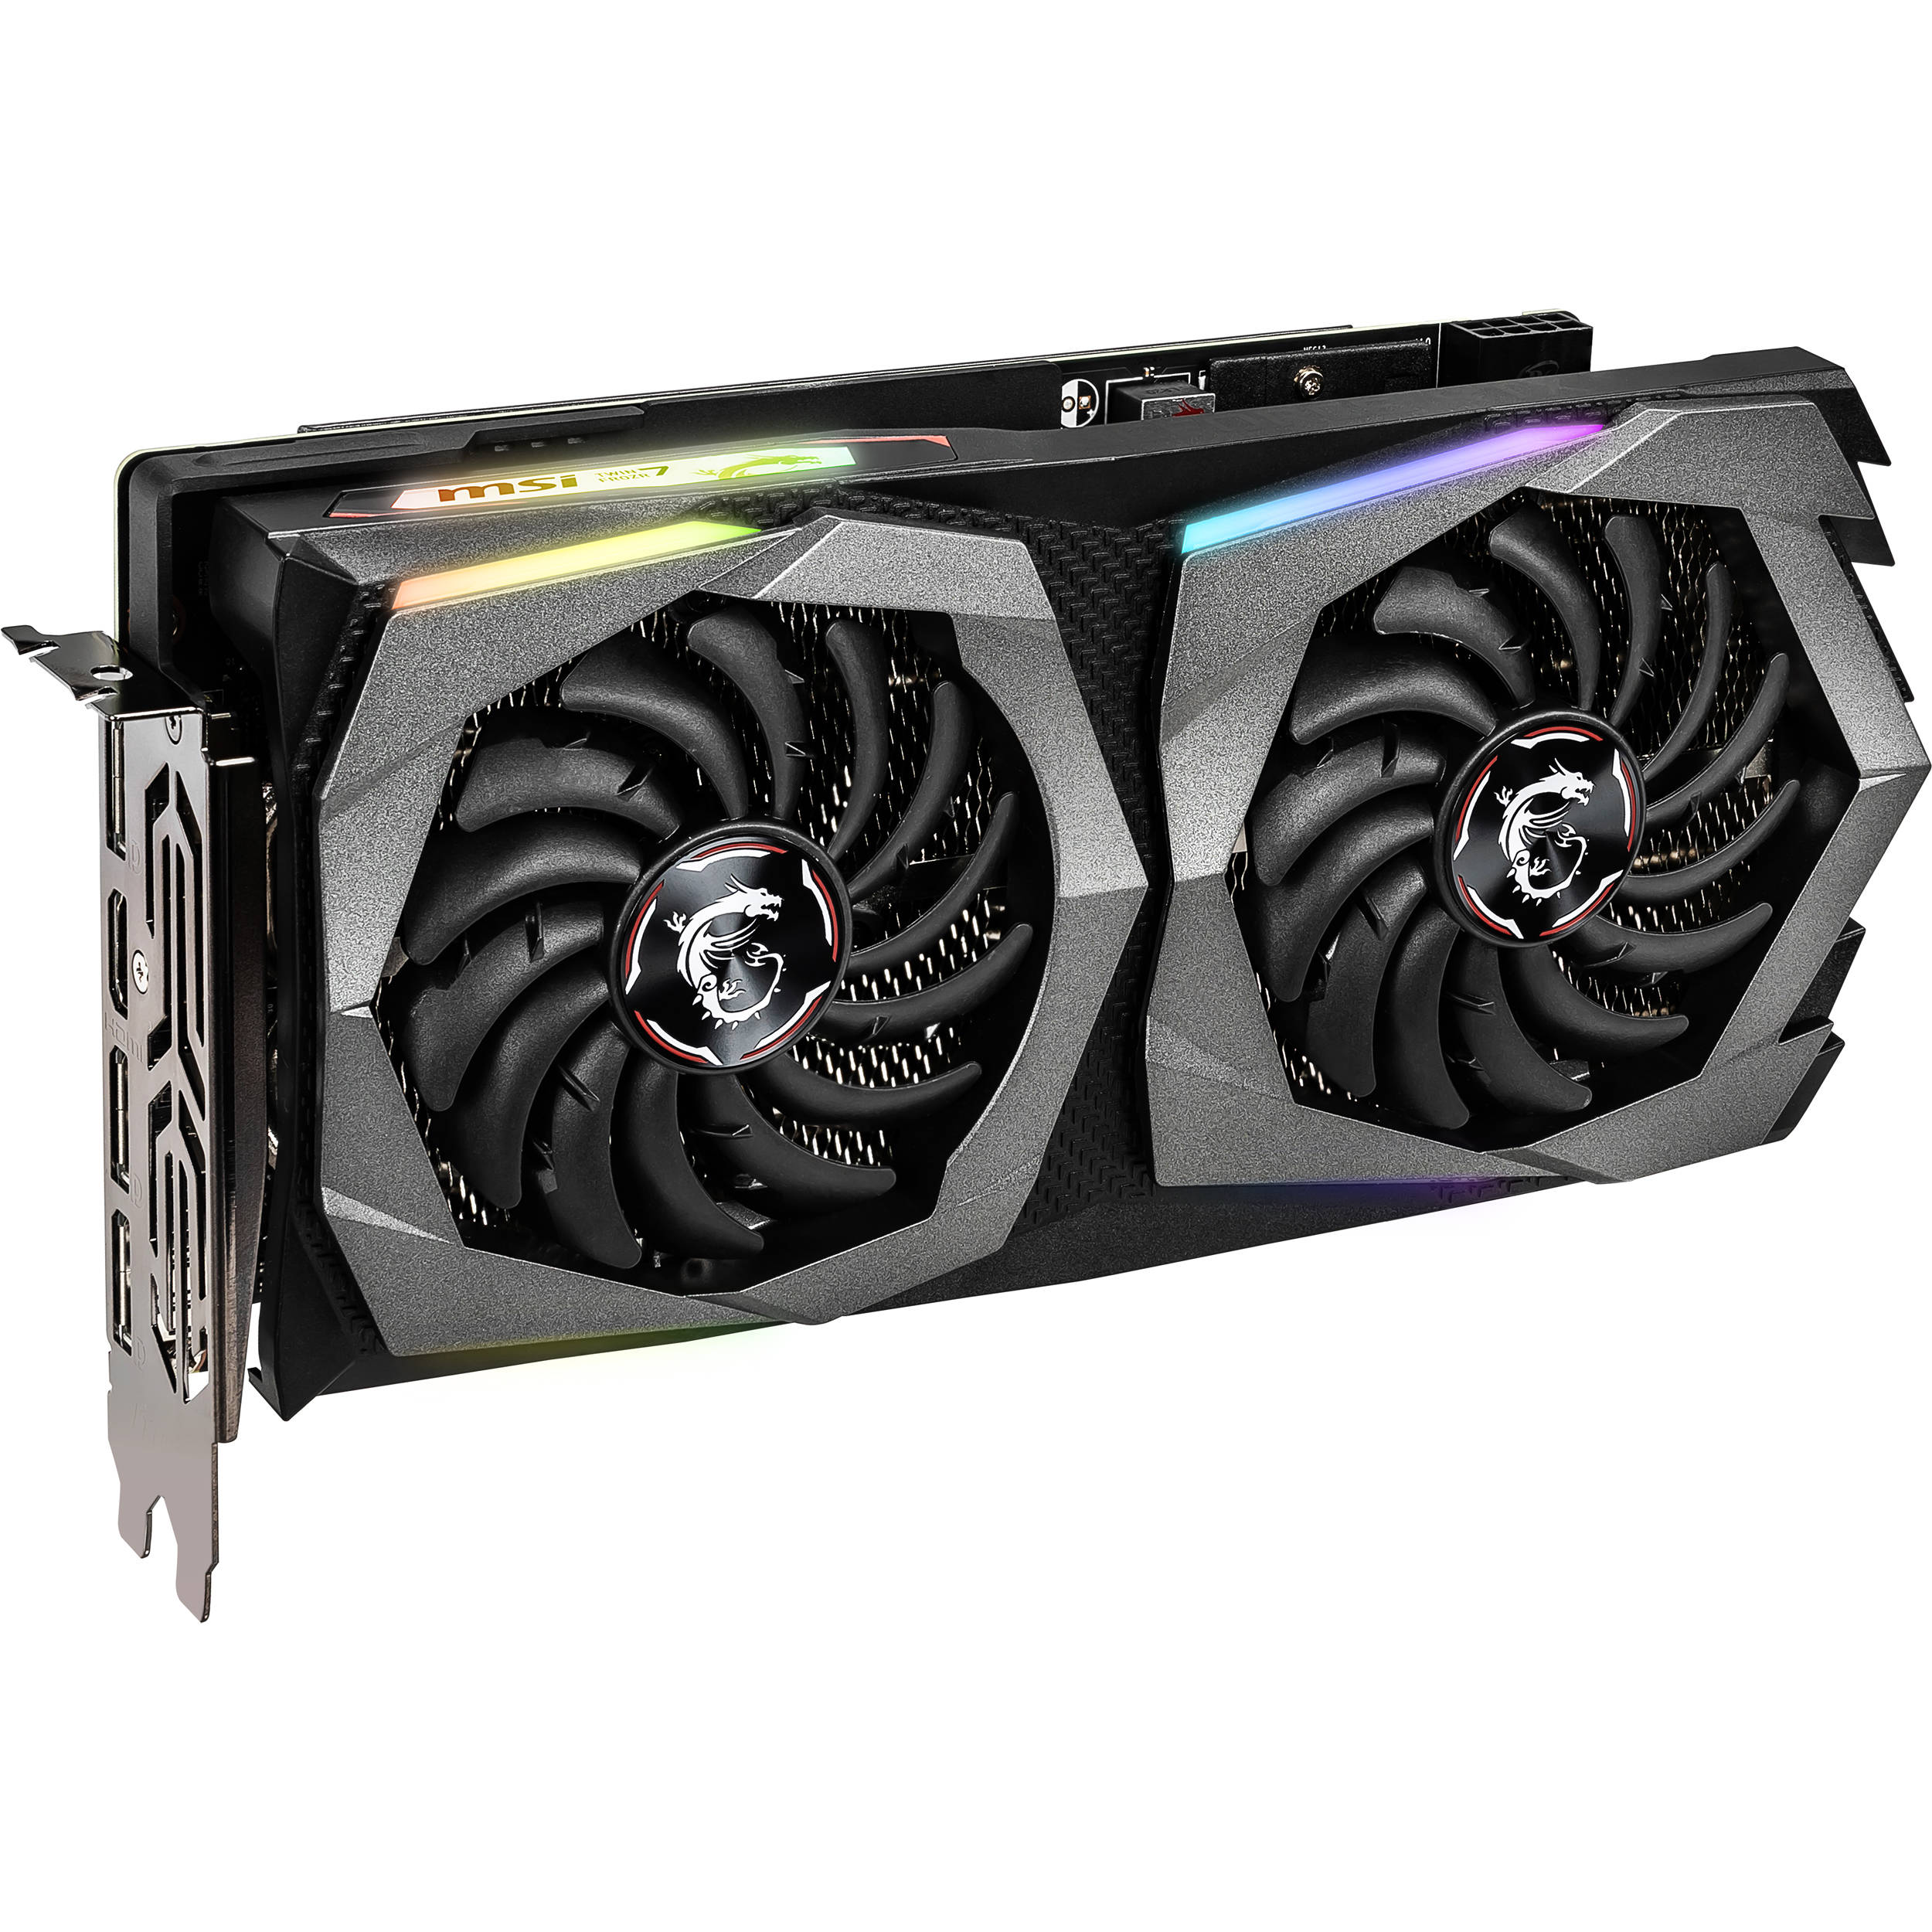 MSI Gaming GeForce RTX 2060 6GB GDRR6 192-bit HDMI//DP Ray Tracing Turing Architecture VR Ready Graphics Card RTX 2060 Ventus XS 6G OC